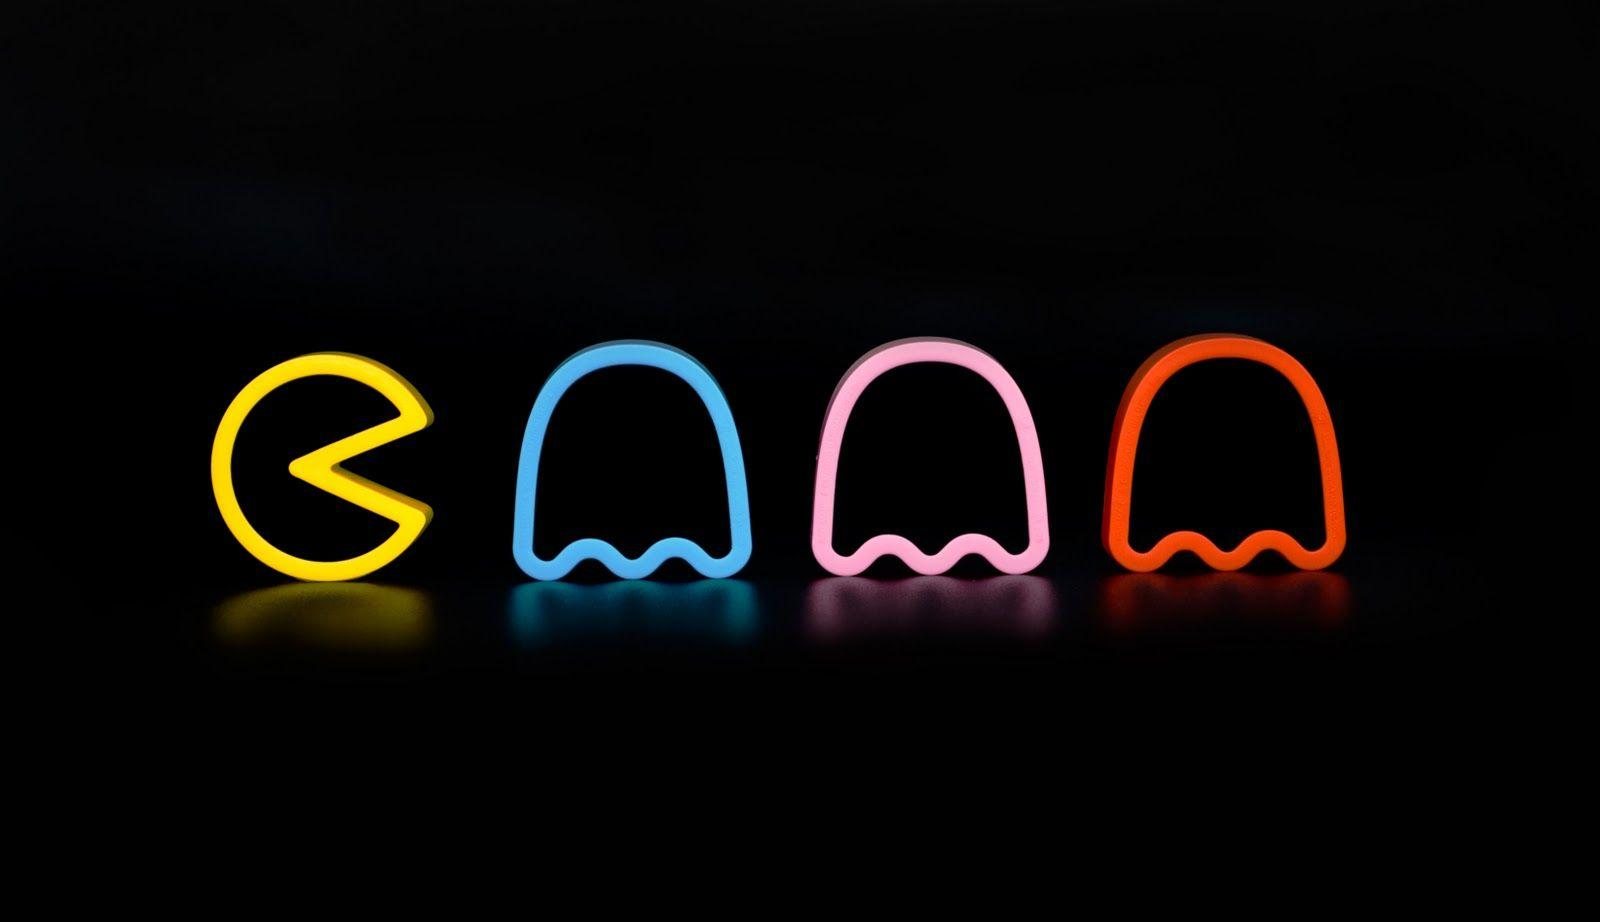 pacman wallpapers - wallpaper cave